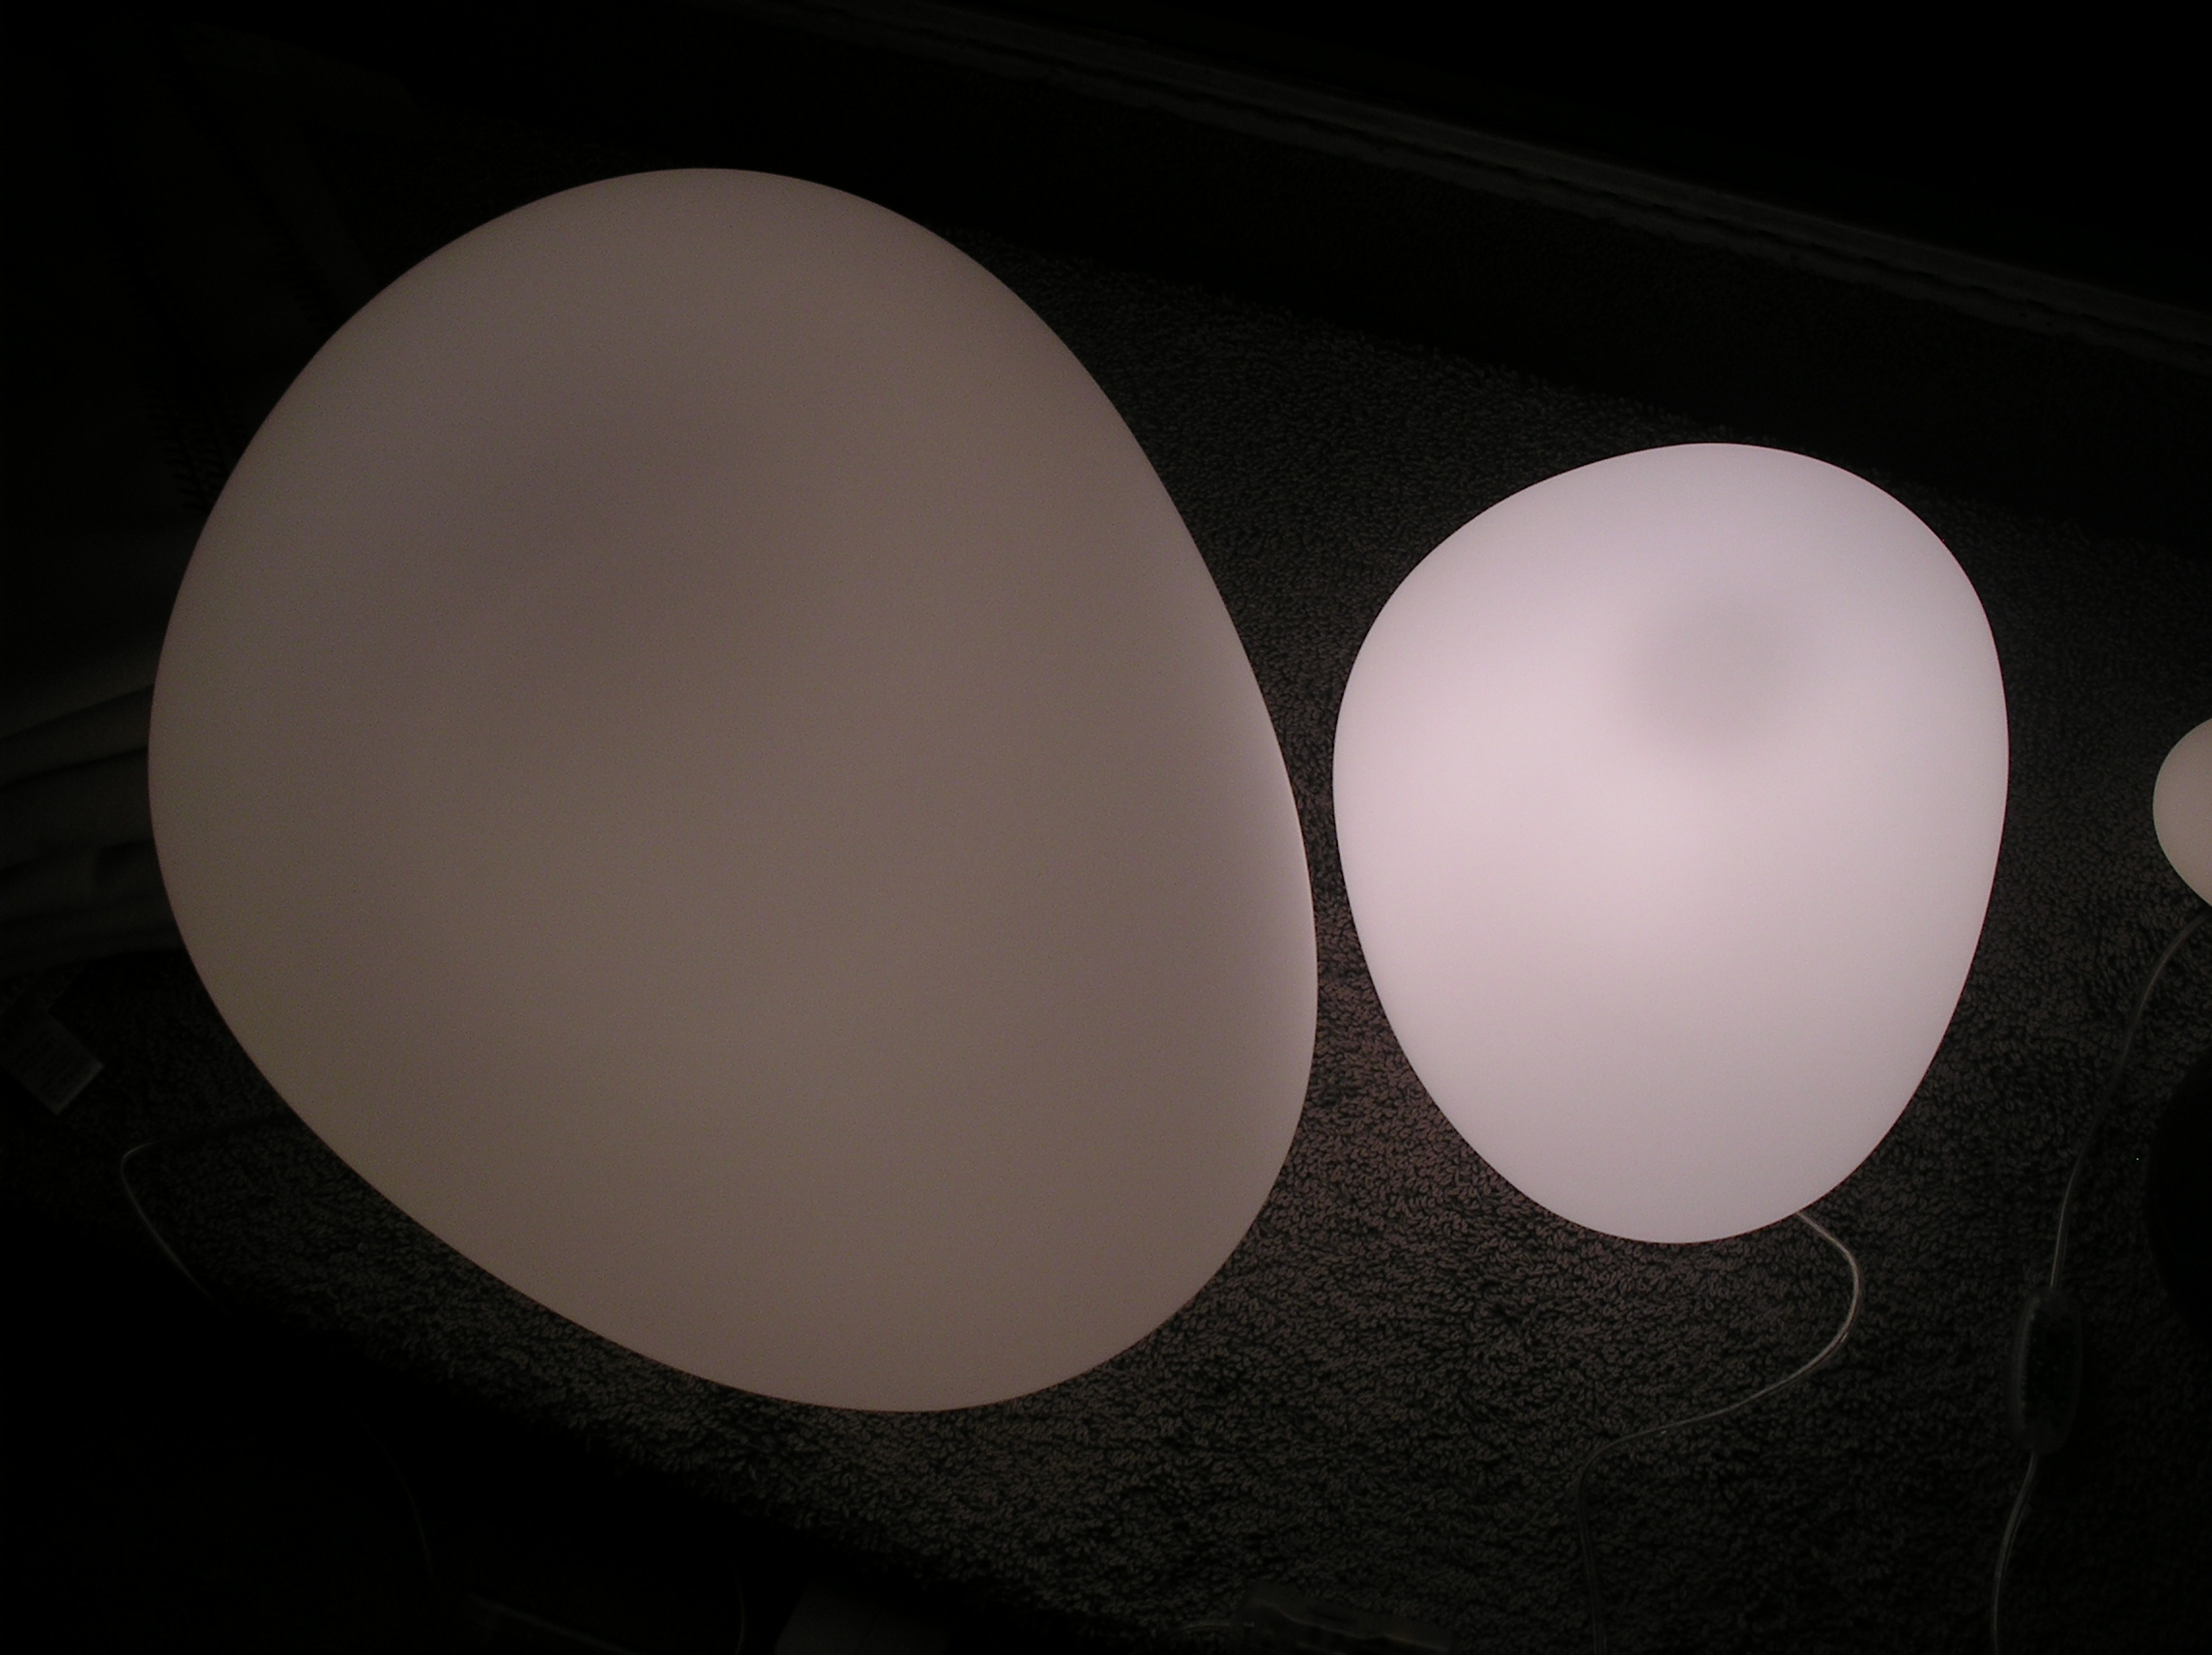 Paper Lamp b581b8e9d766be91d0b3444cdc7dfc53